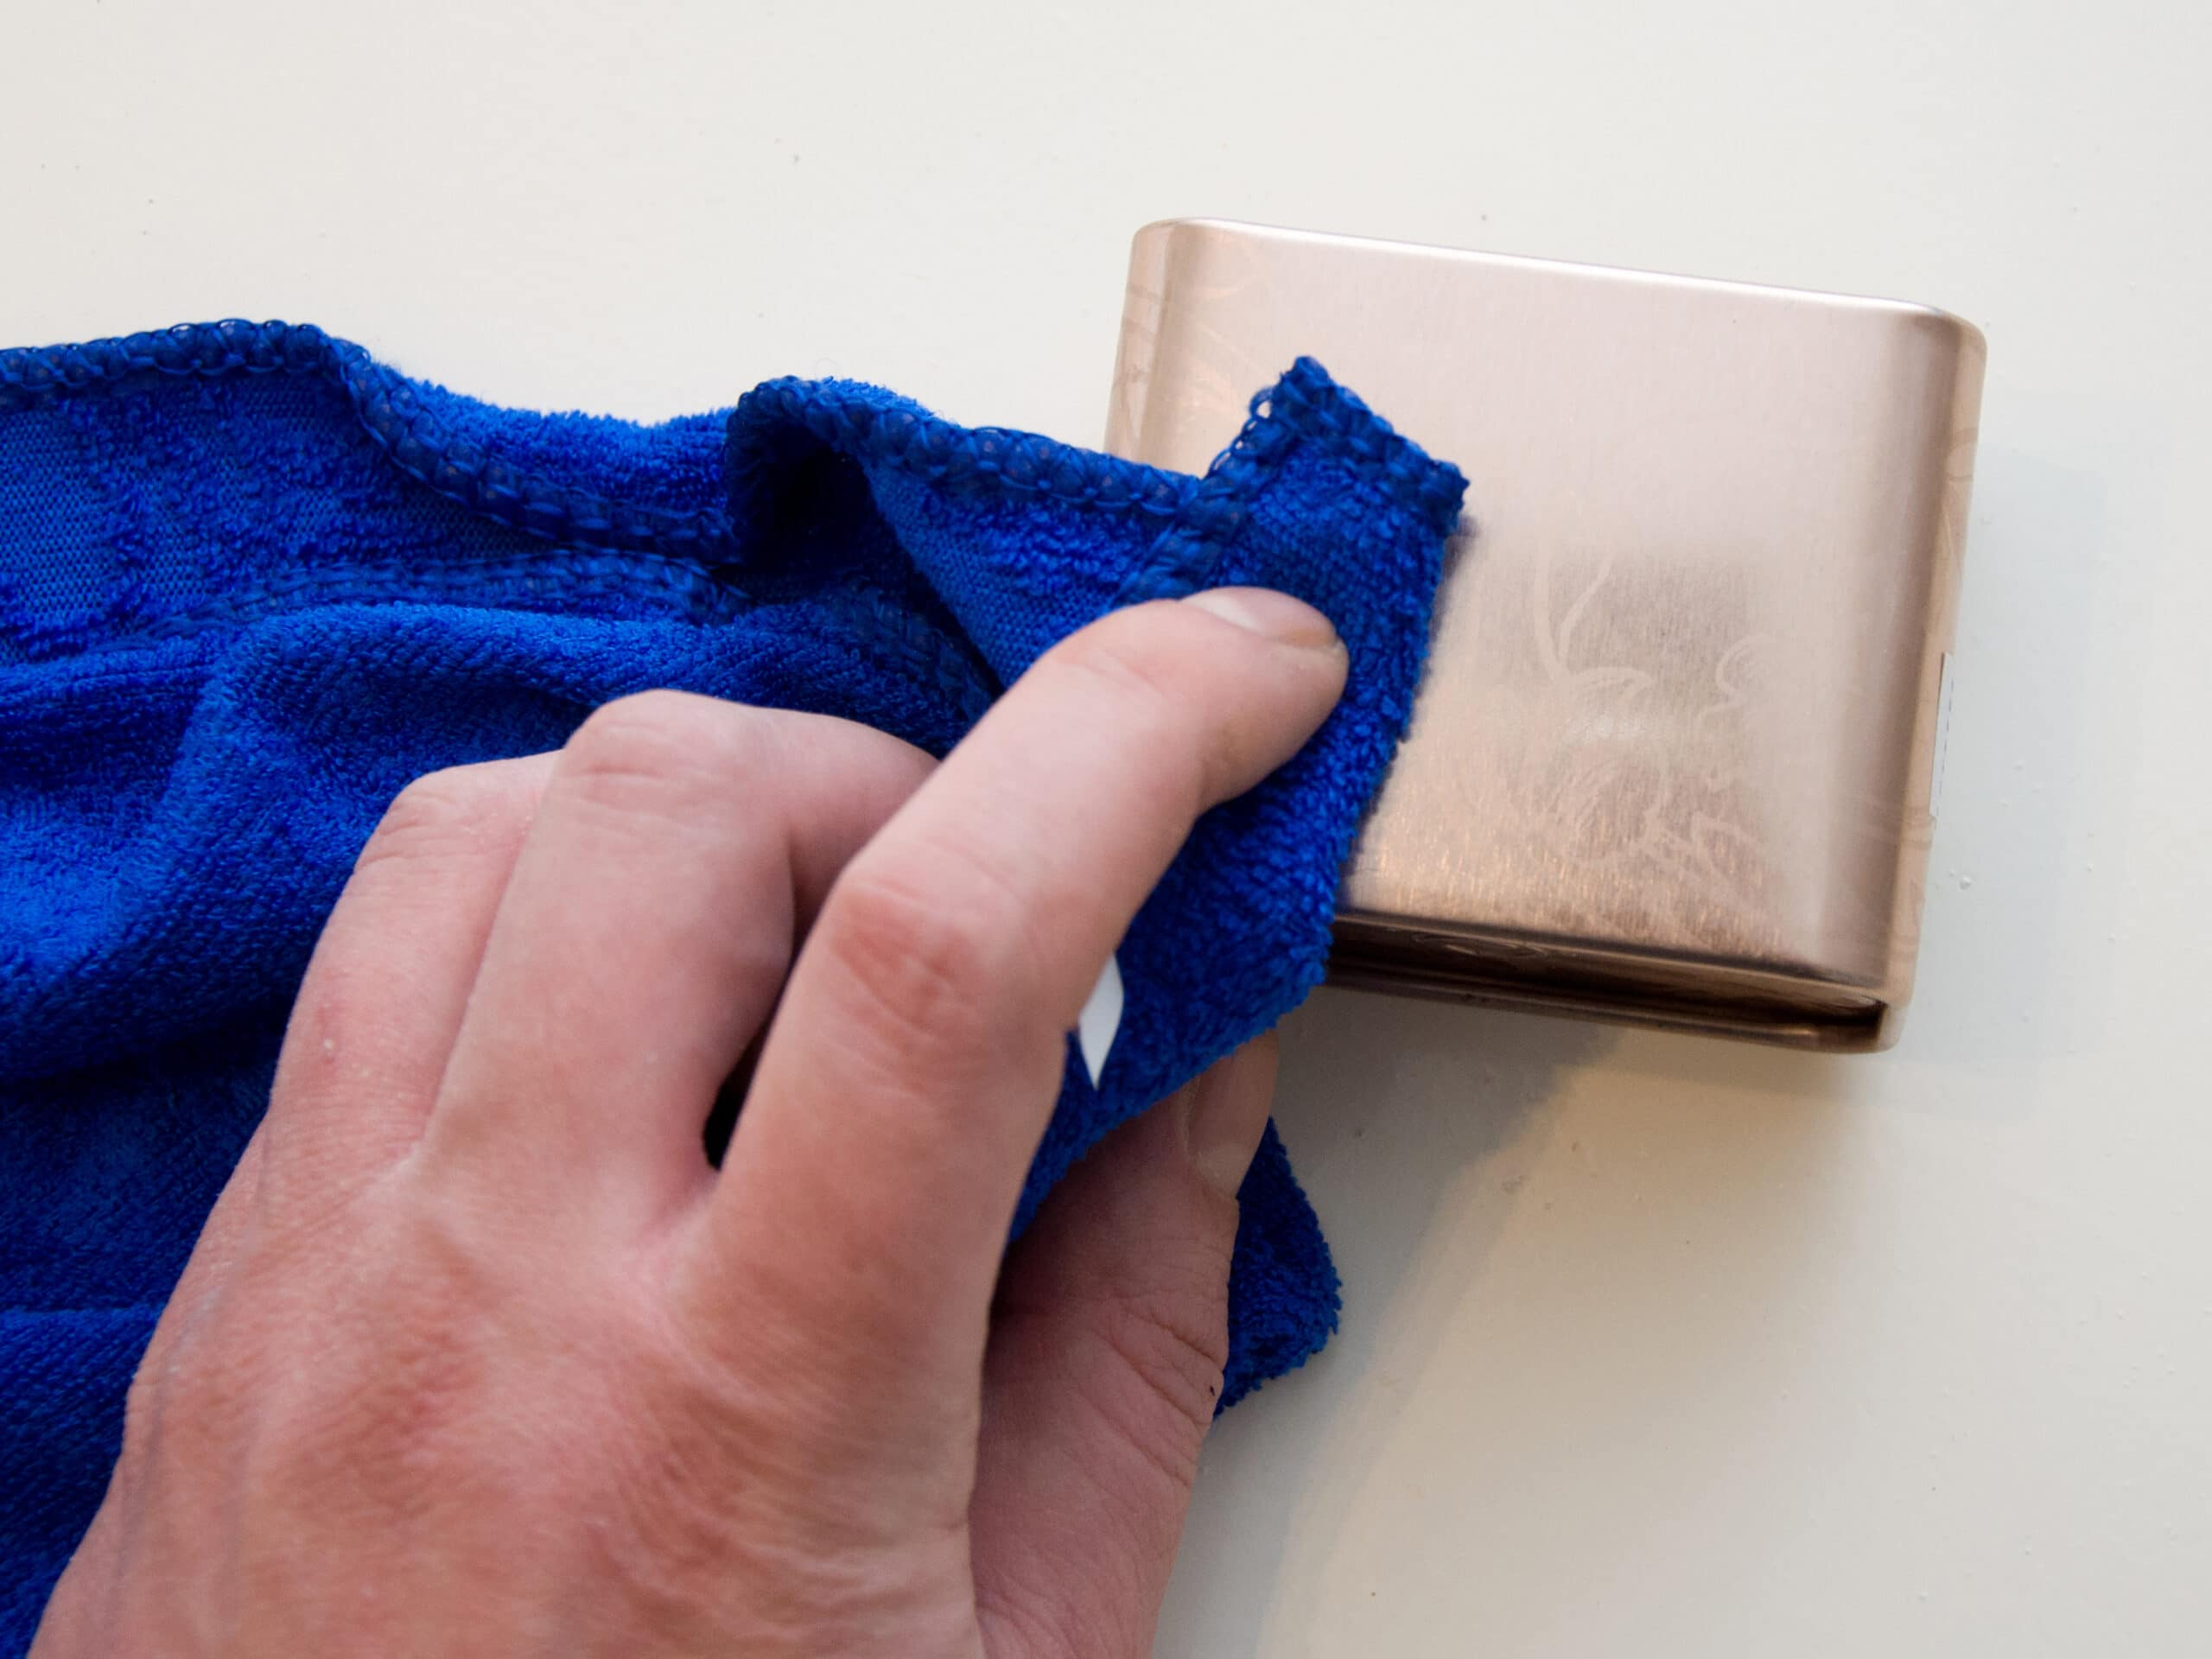 How To Clean Brass With Vinegar